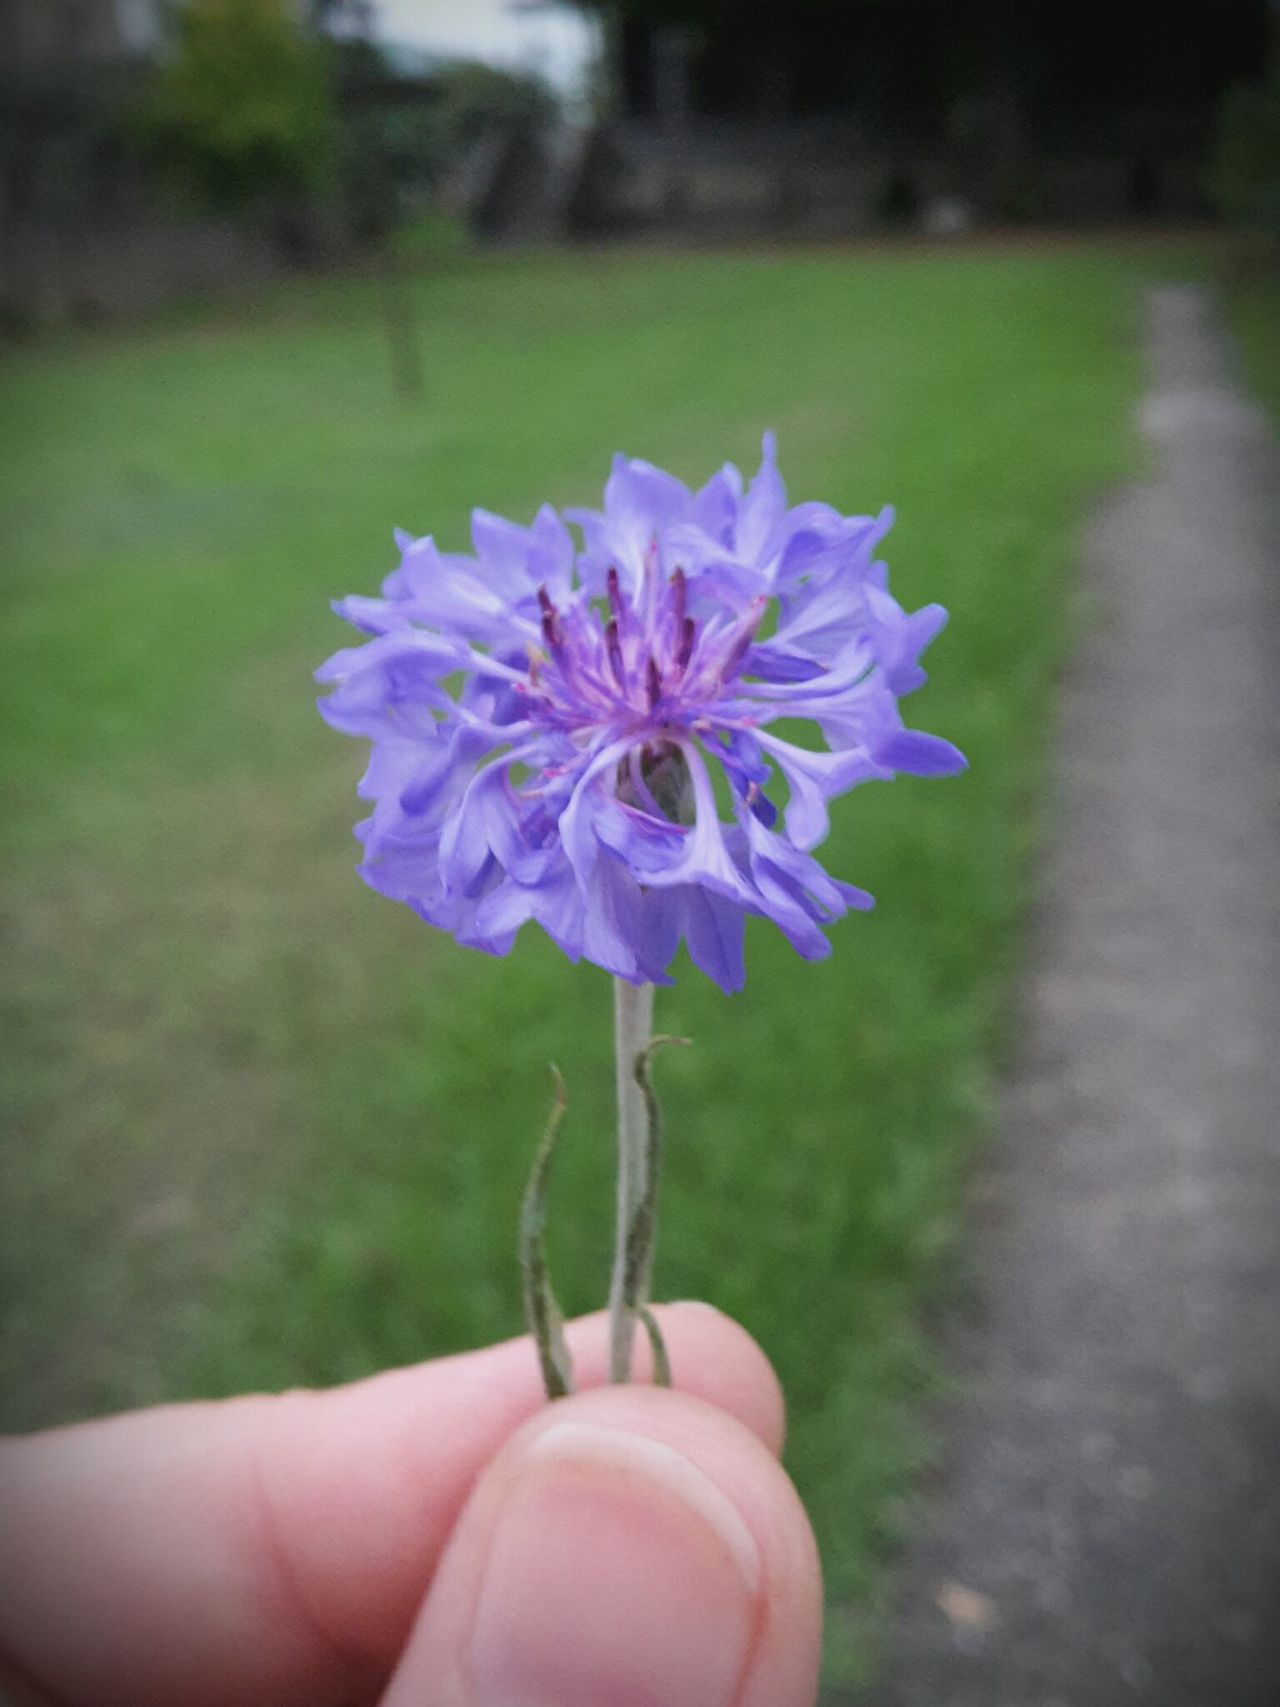 Close-up Day Flower Flower Head Focus On Foreground Fragility Freshness Holding Human Body Part Human Finger Human Hand Lifestyles Nature One Person Outdoors Personal Perspective Purple Real People Unrecognizable Person